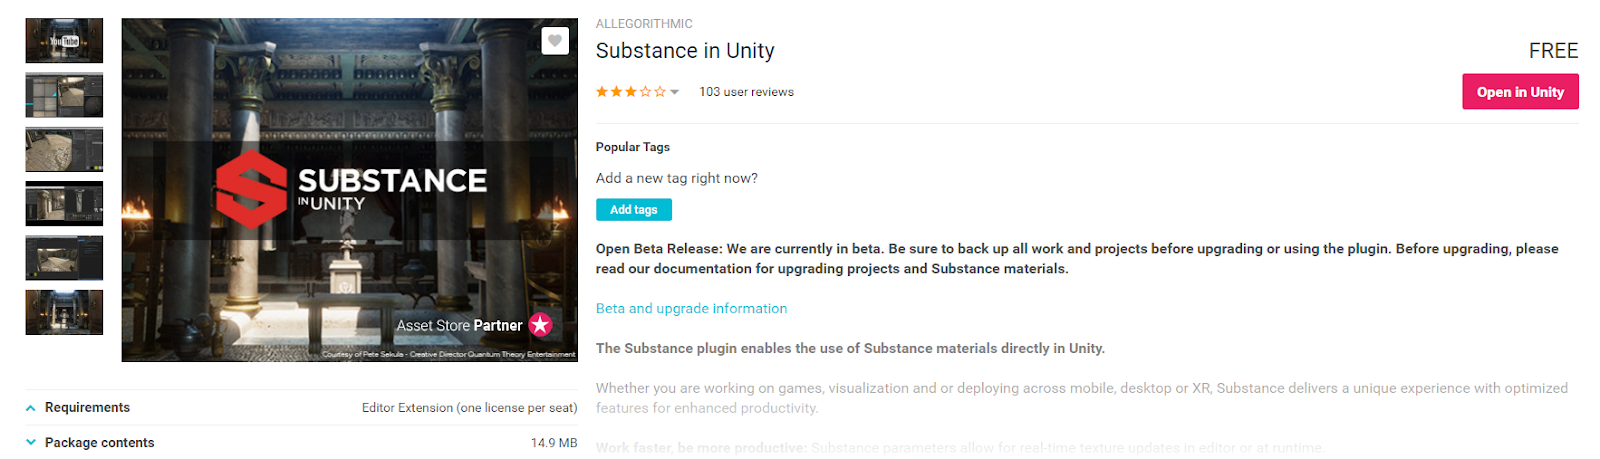 How To Use Substances Inside of Unity - GameTextures - Medium